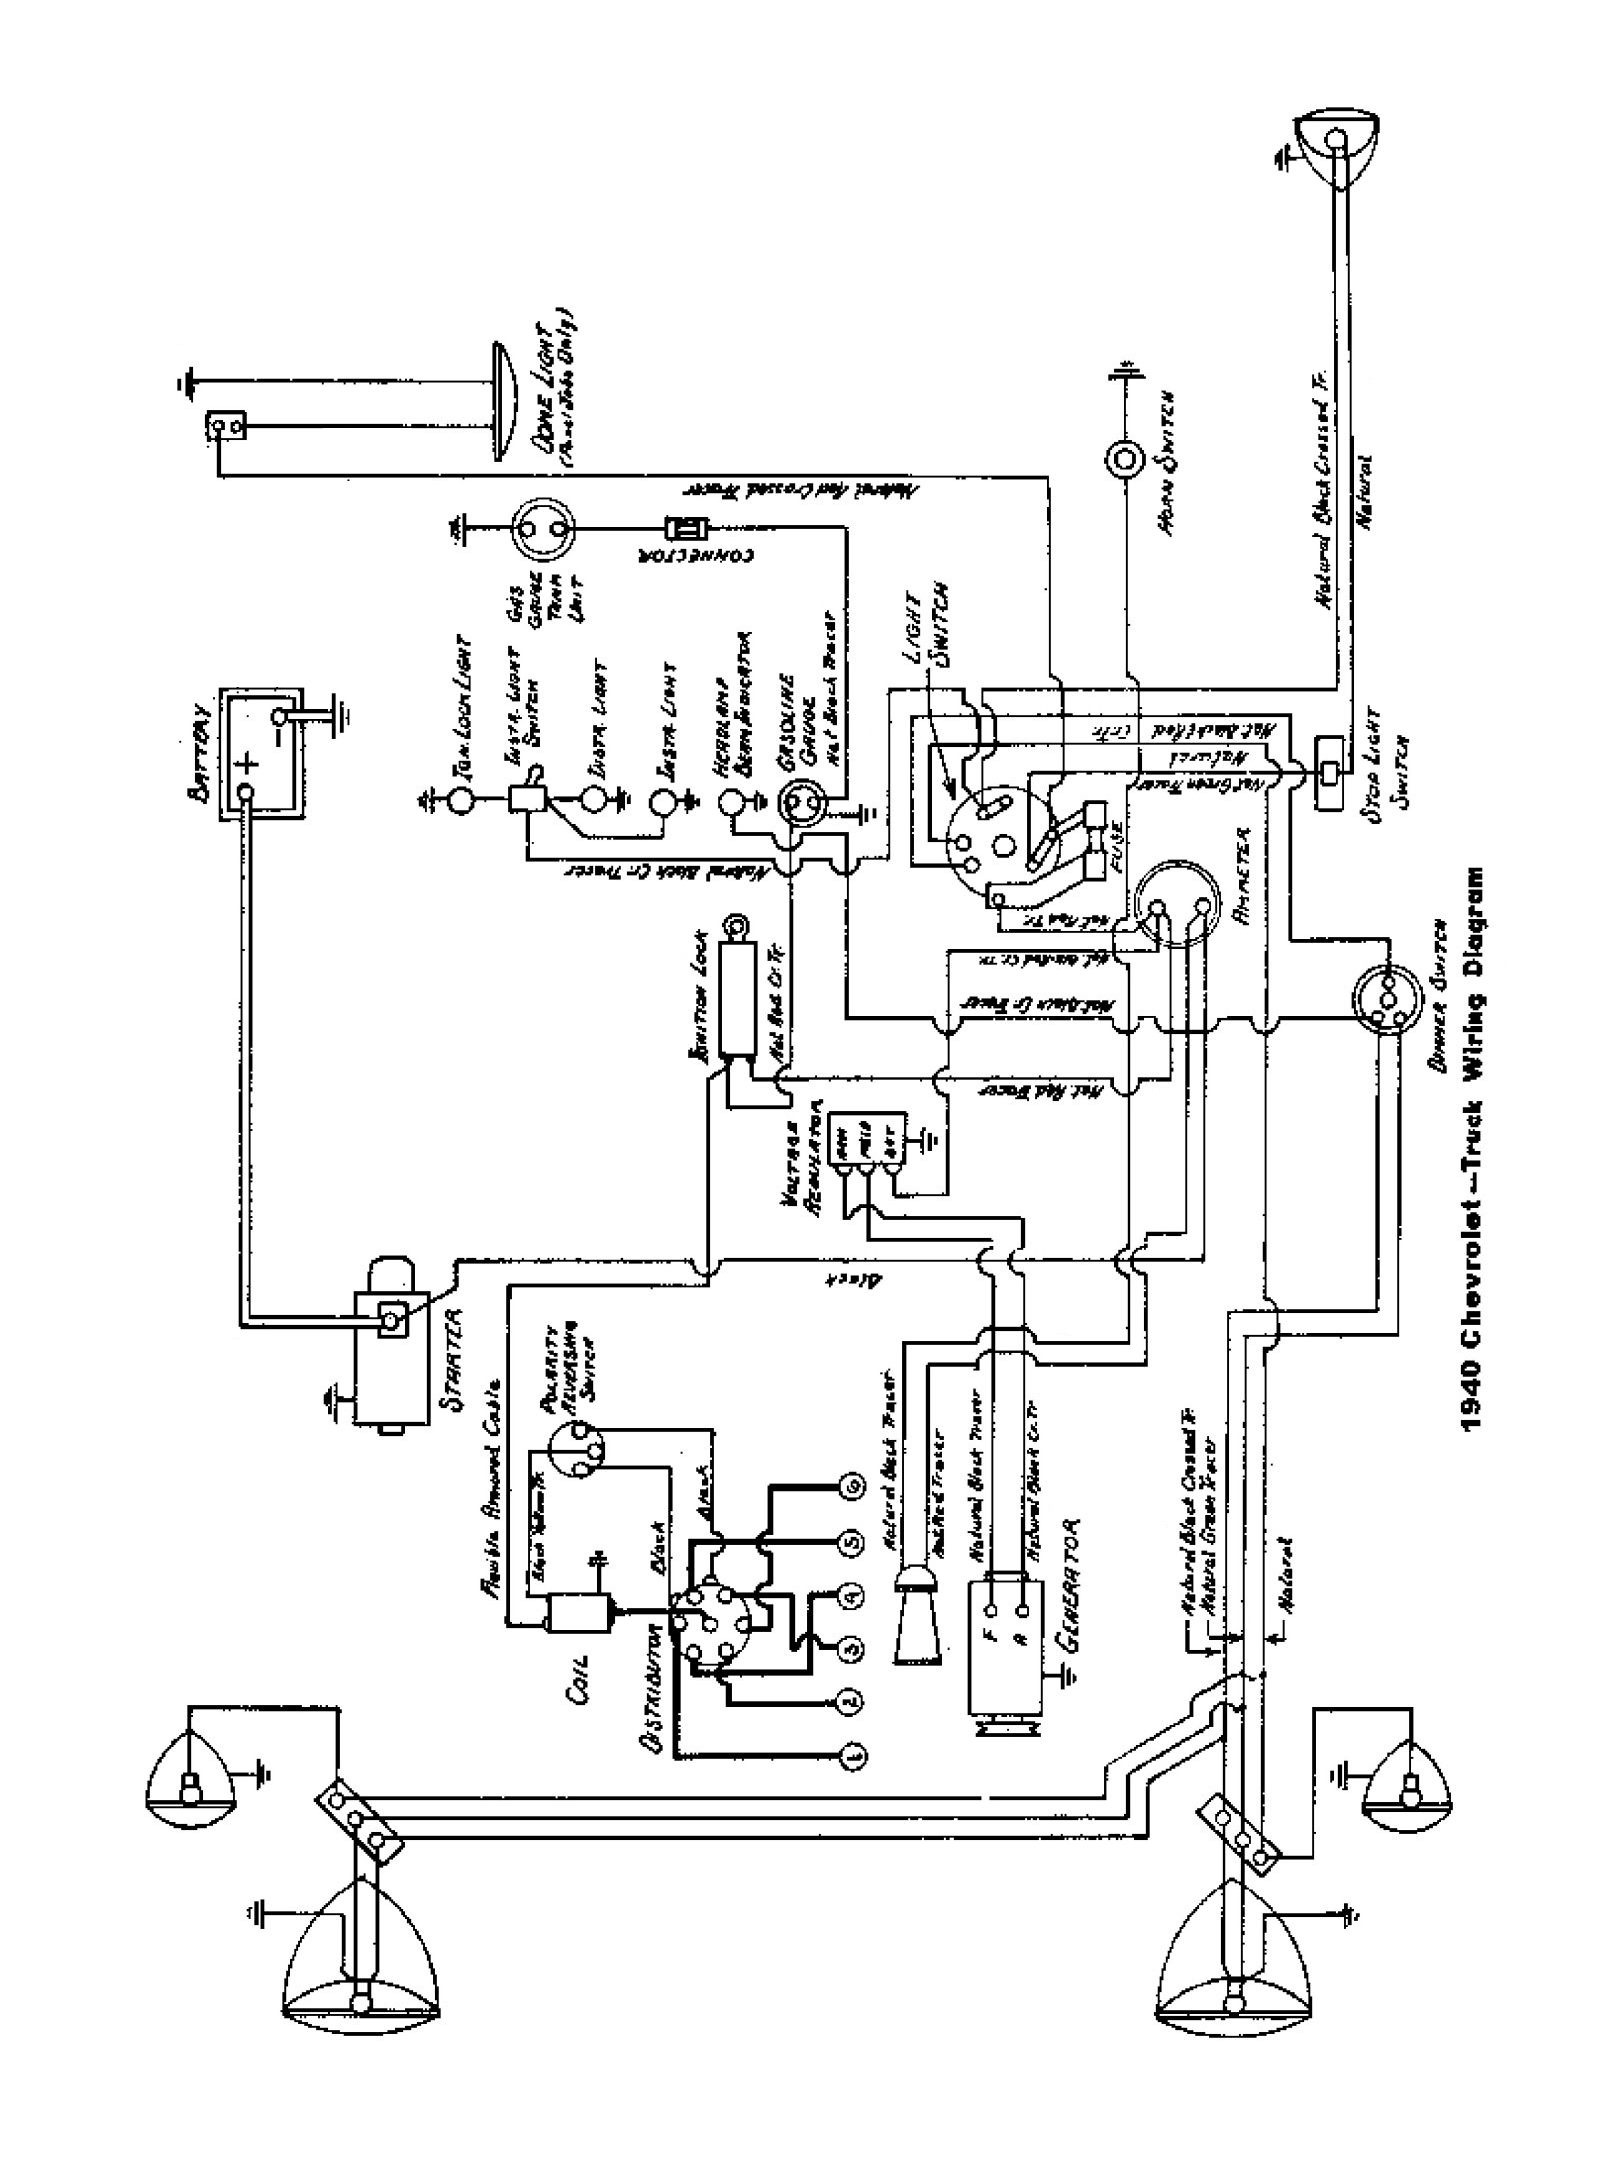 40truck chevy wiring diagrams 1954 chevy truck wiring diagram at bayanpartner.co